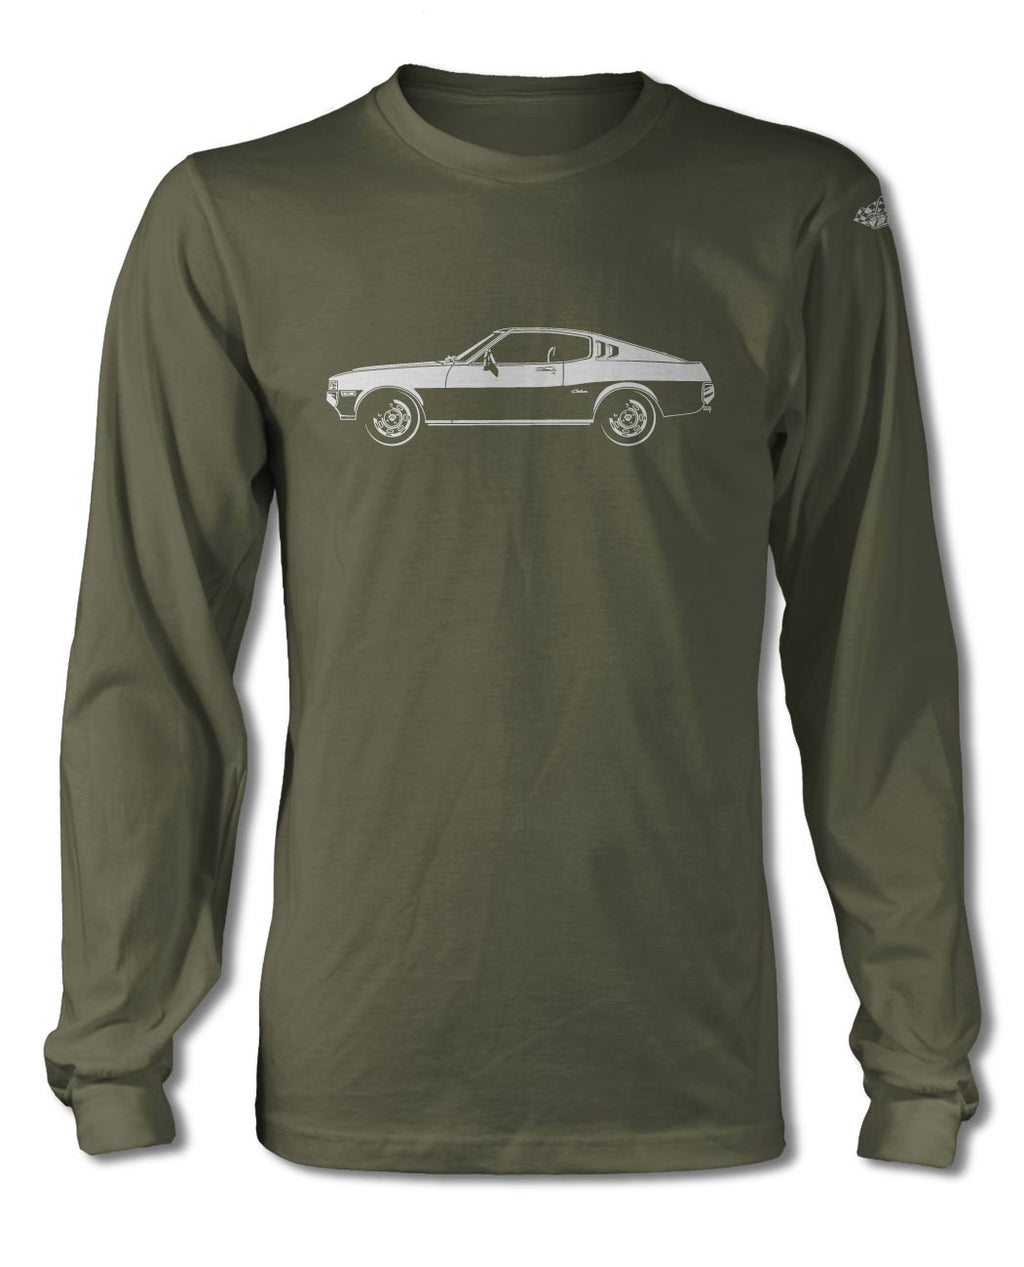 Toyota Celica Liftback 1973 – 1977 T-Shirt - Long Sleeves - Side View